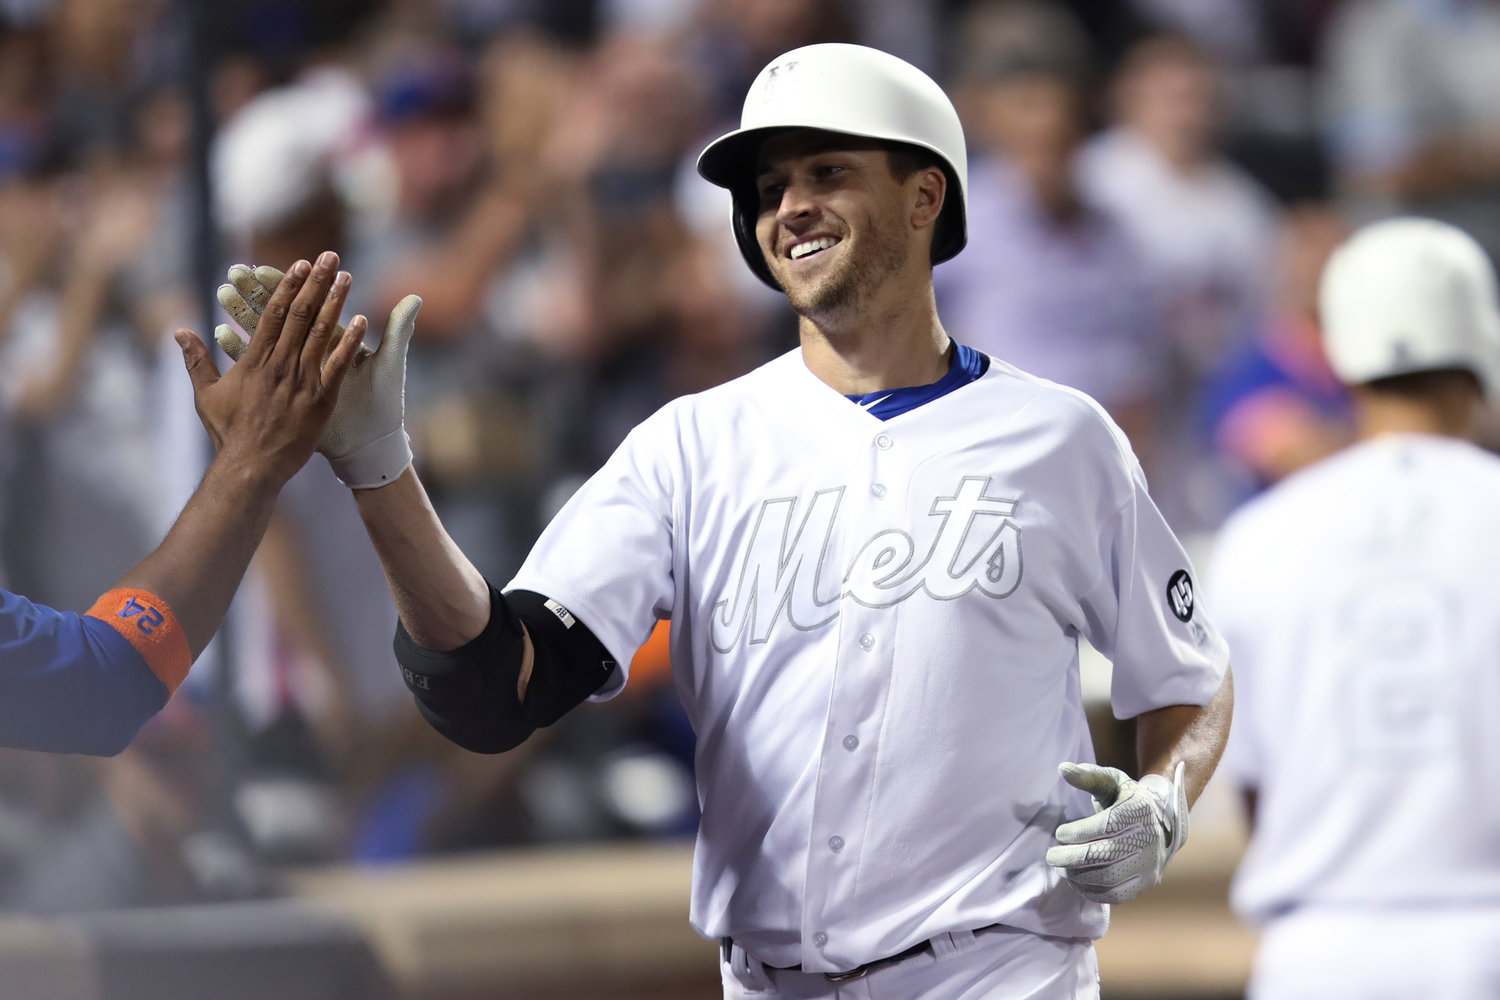 HELPING HIS OWN CAUSE — Mets pitcher Jacob deGrom celebrates after hitting a home run during the sixth inning of Friday's game against the Braves in New York. DeGrom struck out 13 in seven innings, but the Braves won 2-1 in 14 innings.